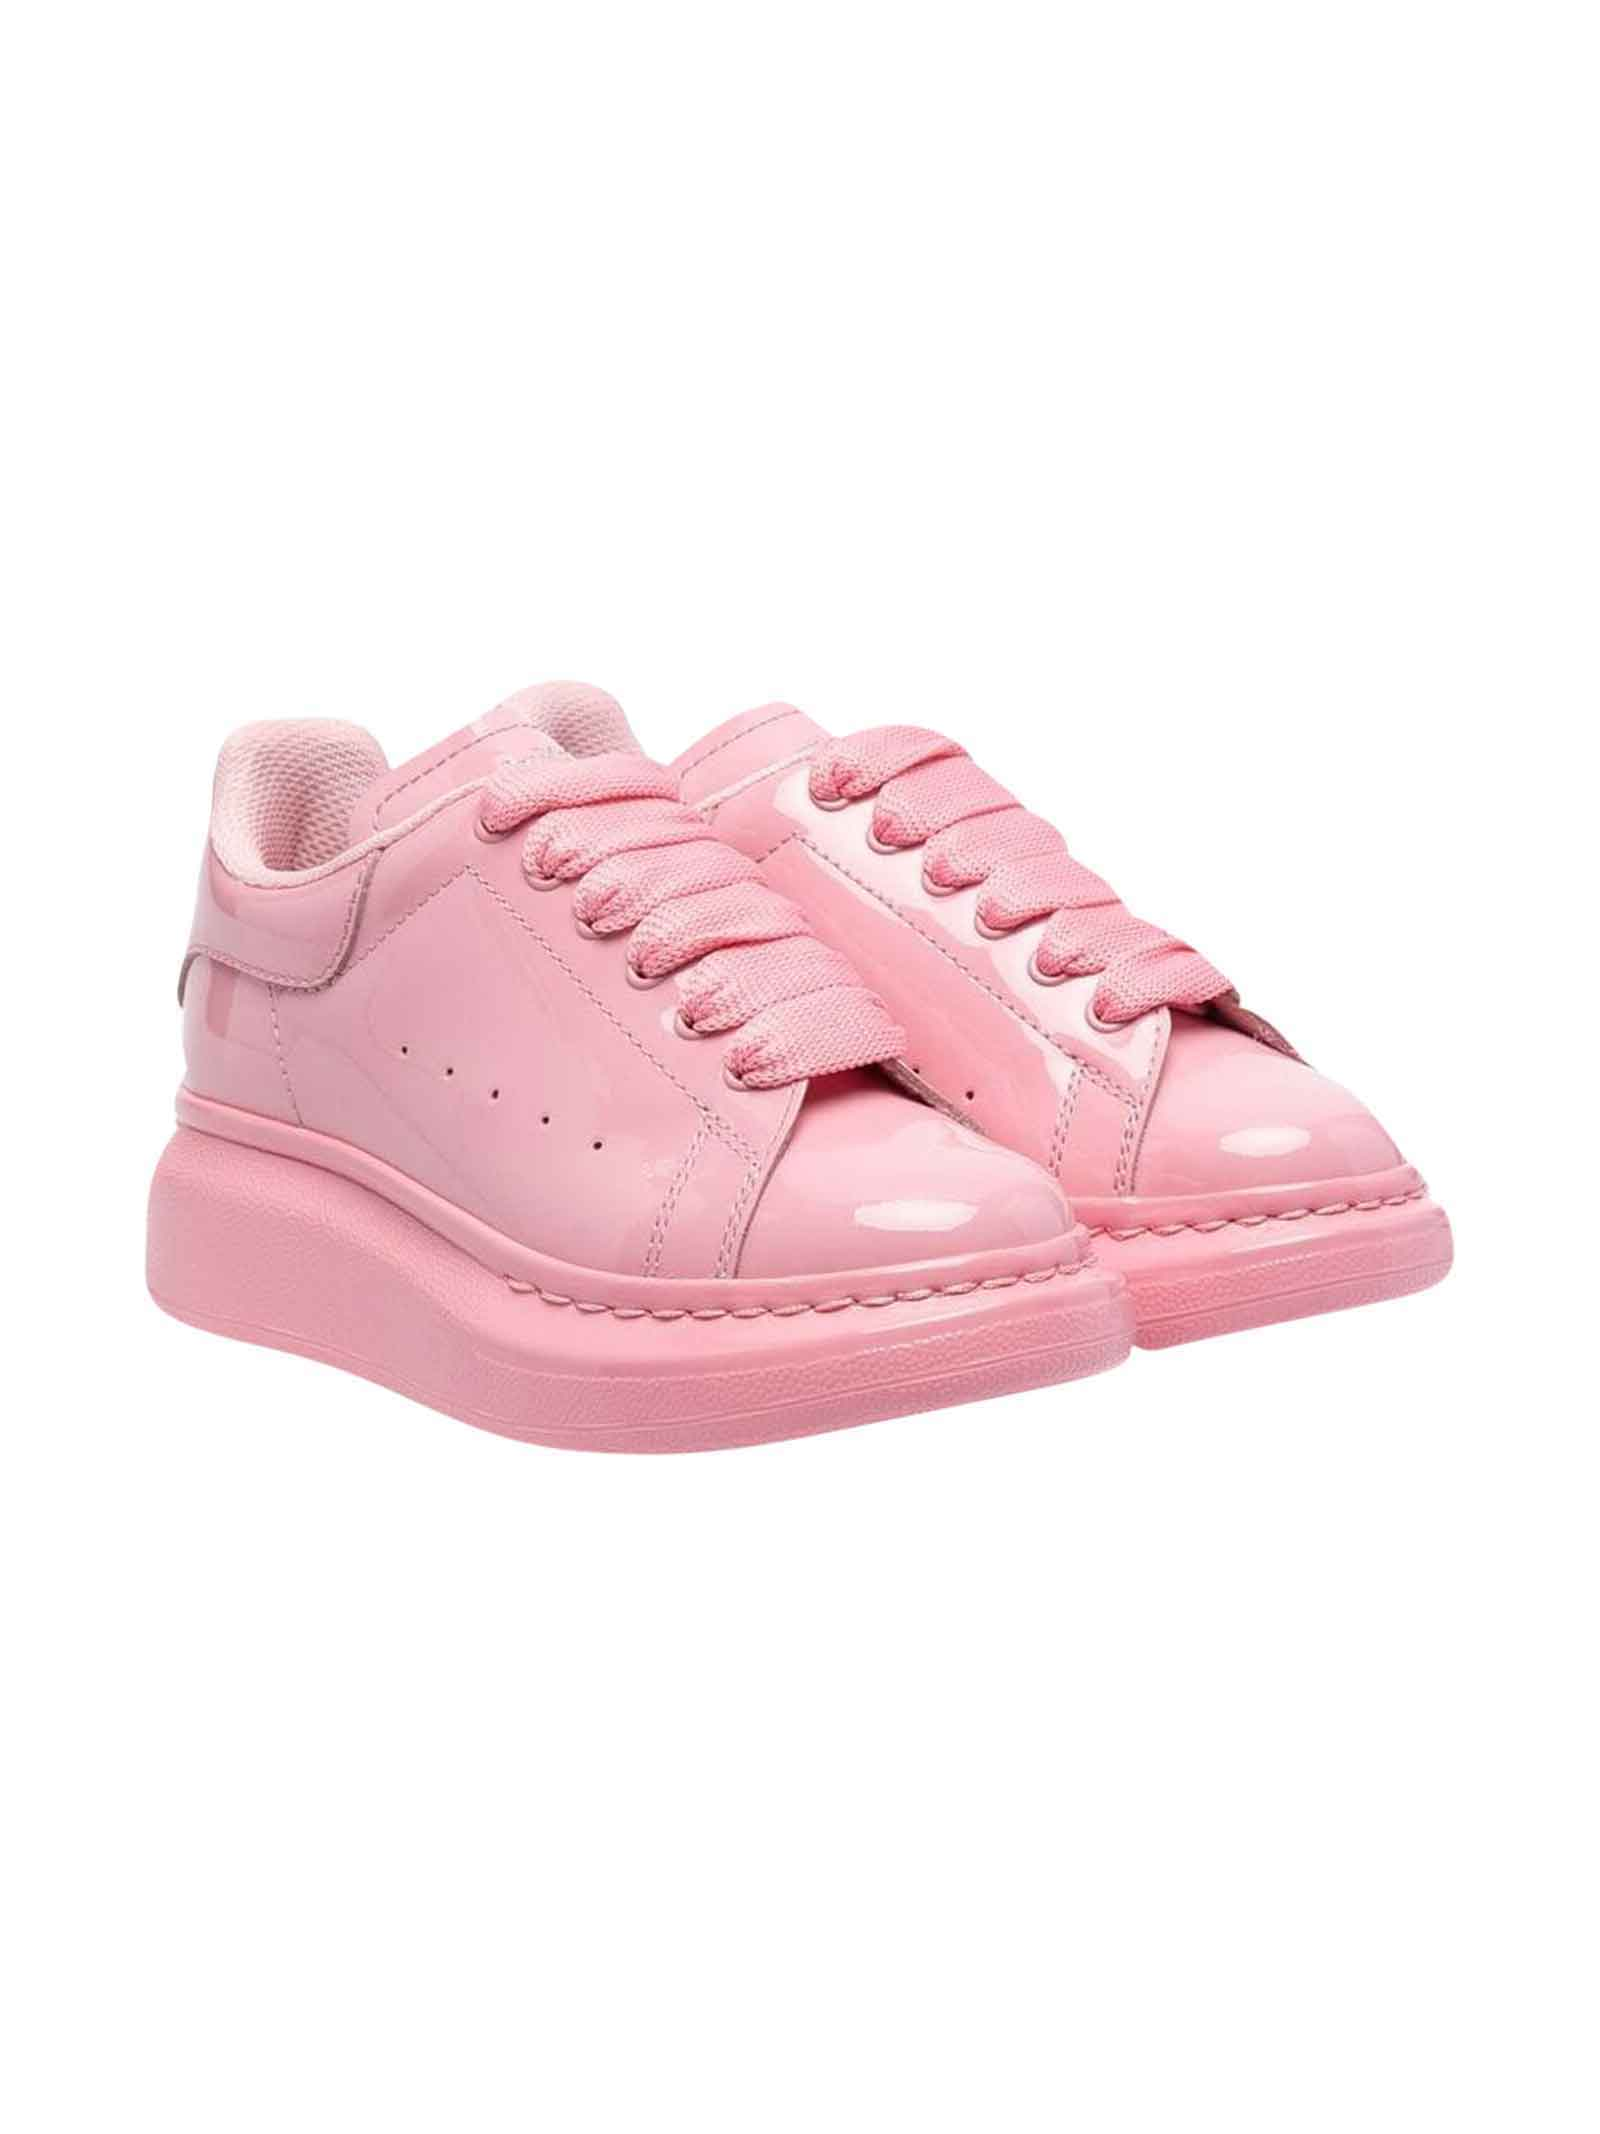 Alexander McQueen Pink Sneakers With Round Tip, Logo Embroidery And Laces Kids